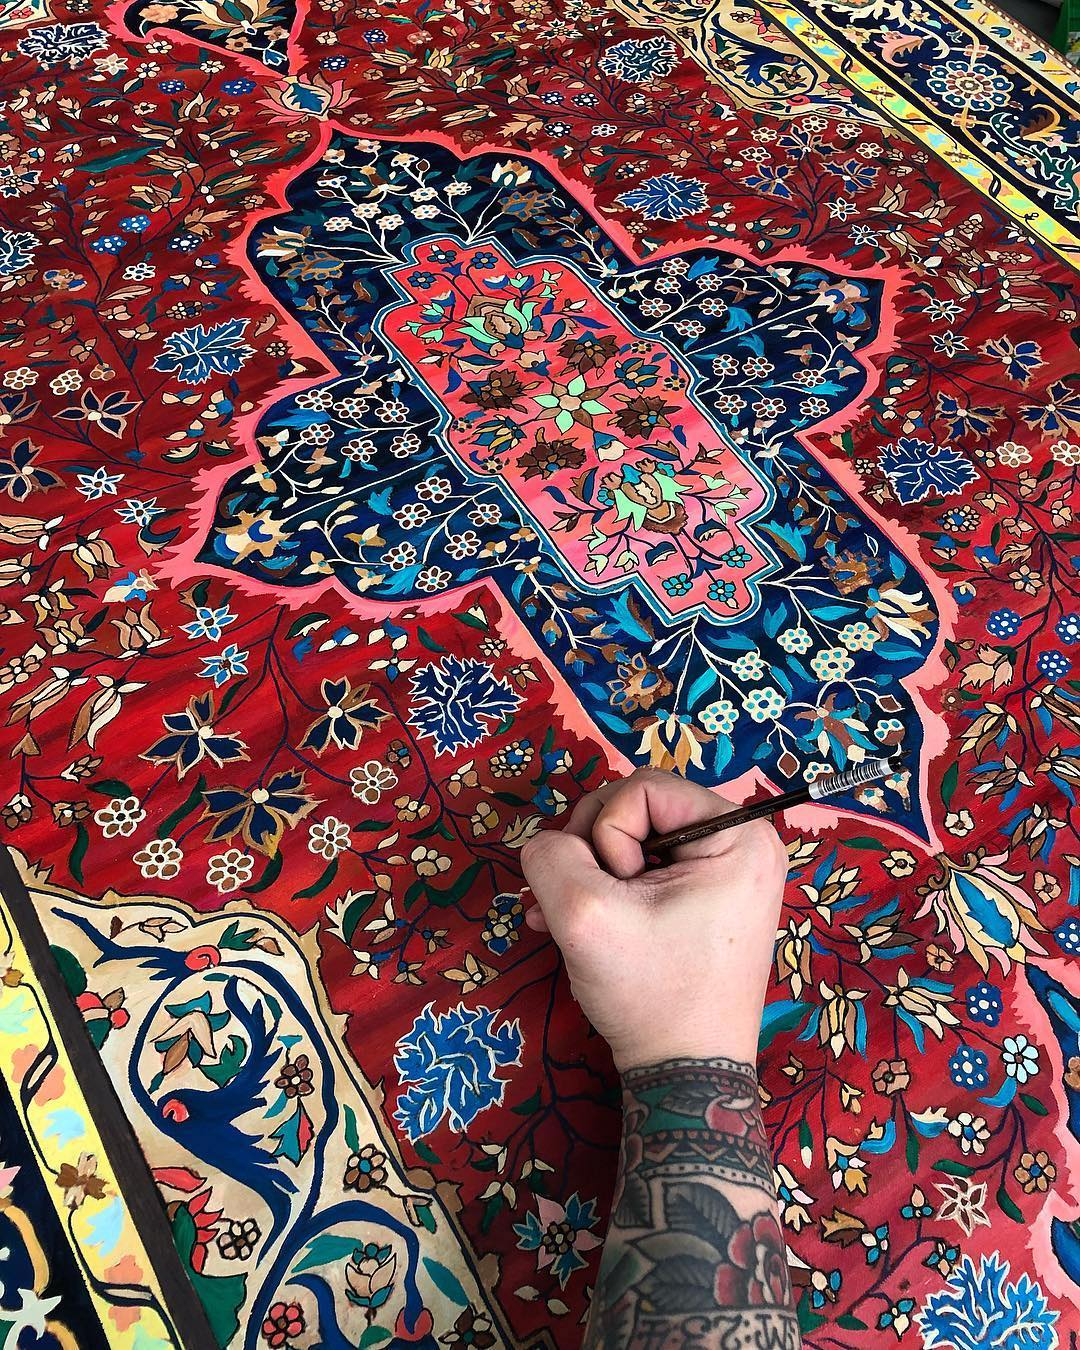 New Hand-Painted Persian Carpets With Vibrantly Hued Details by Jason Seife